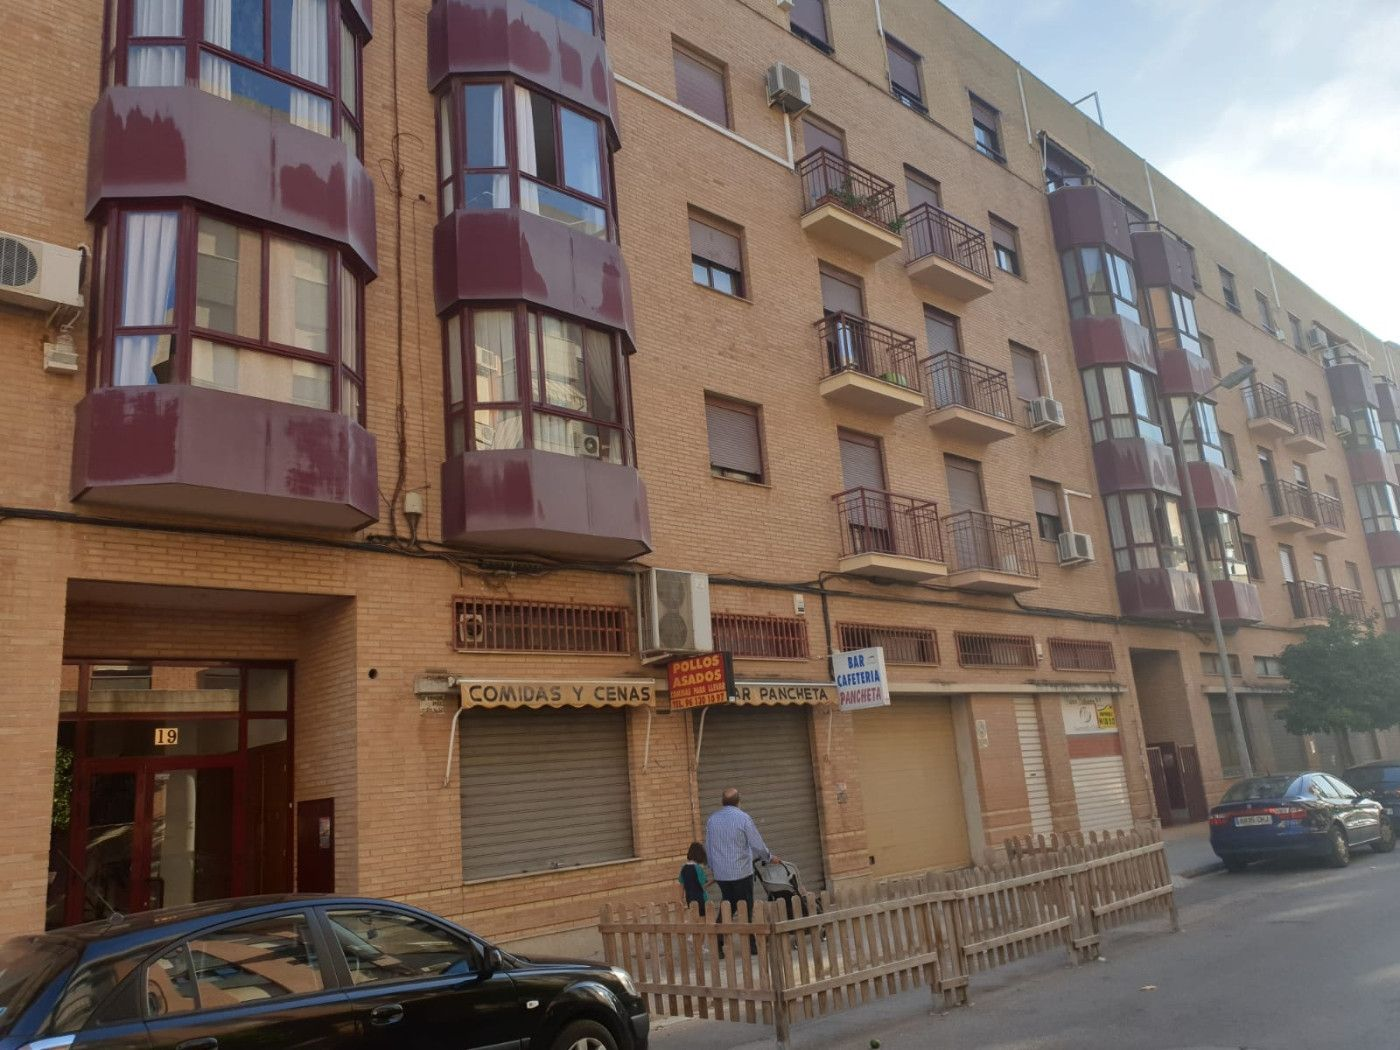 Parking coche  Calle barcelona. - oportunidad -